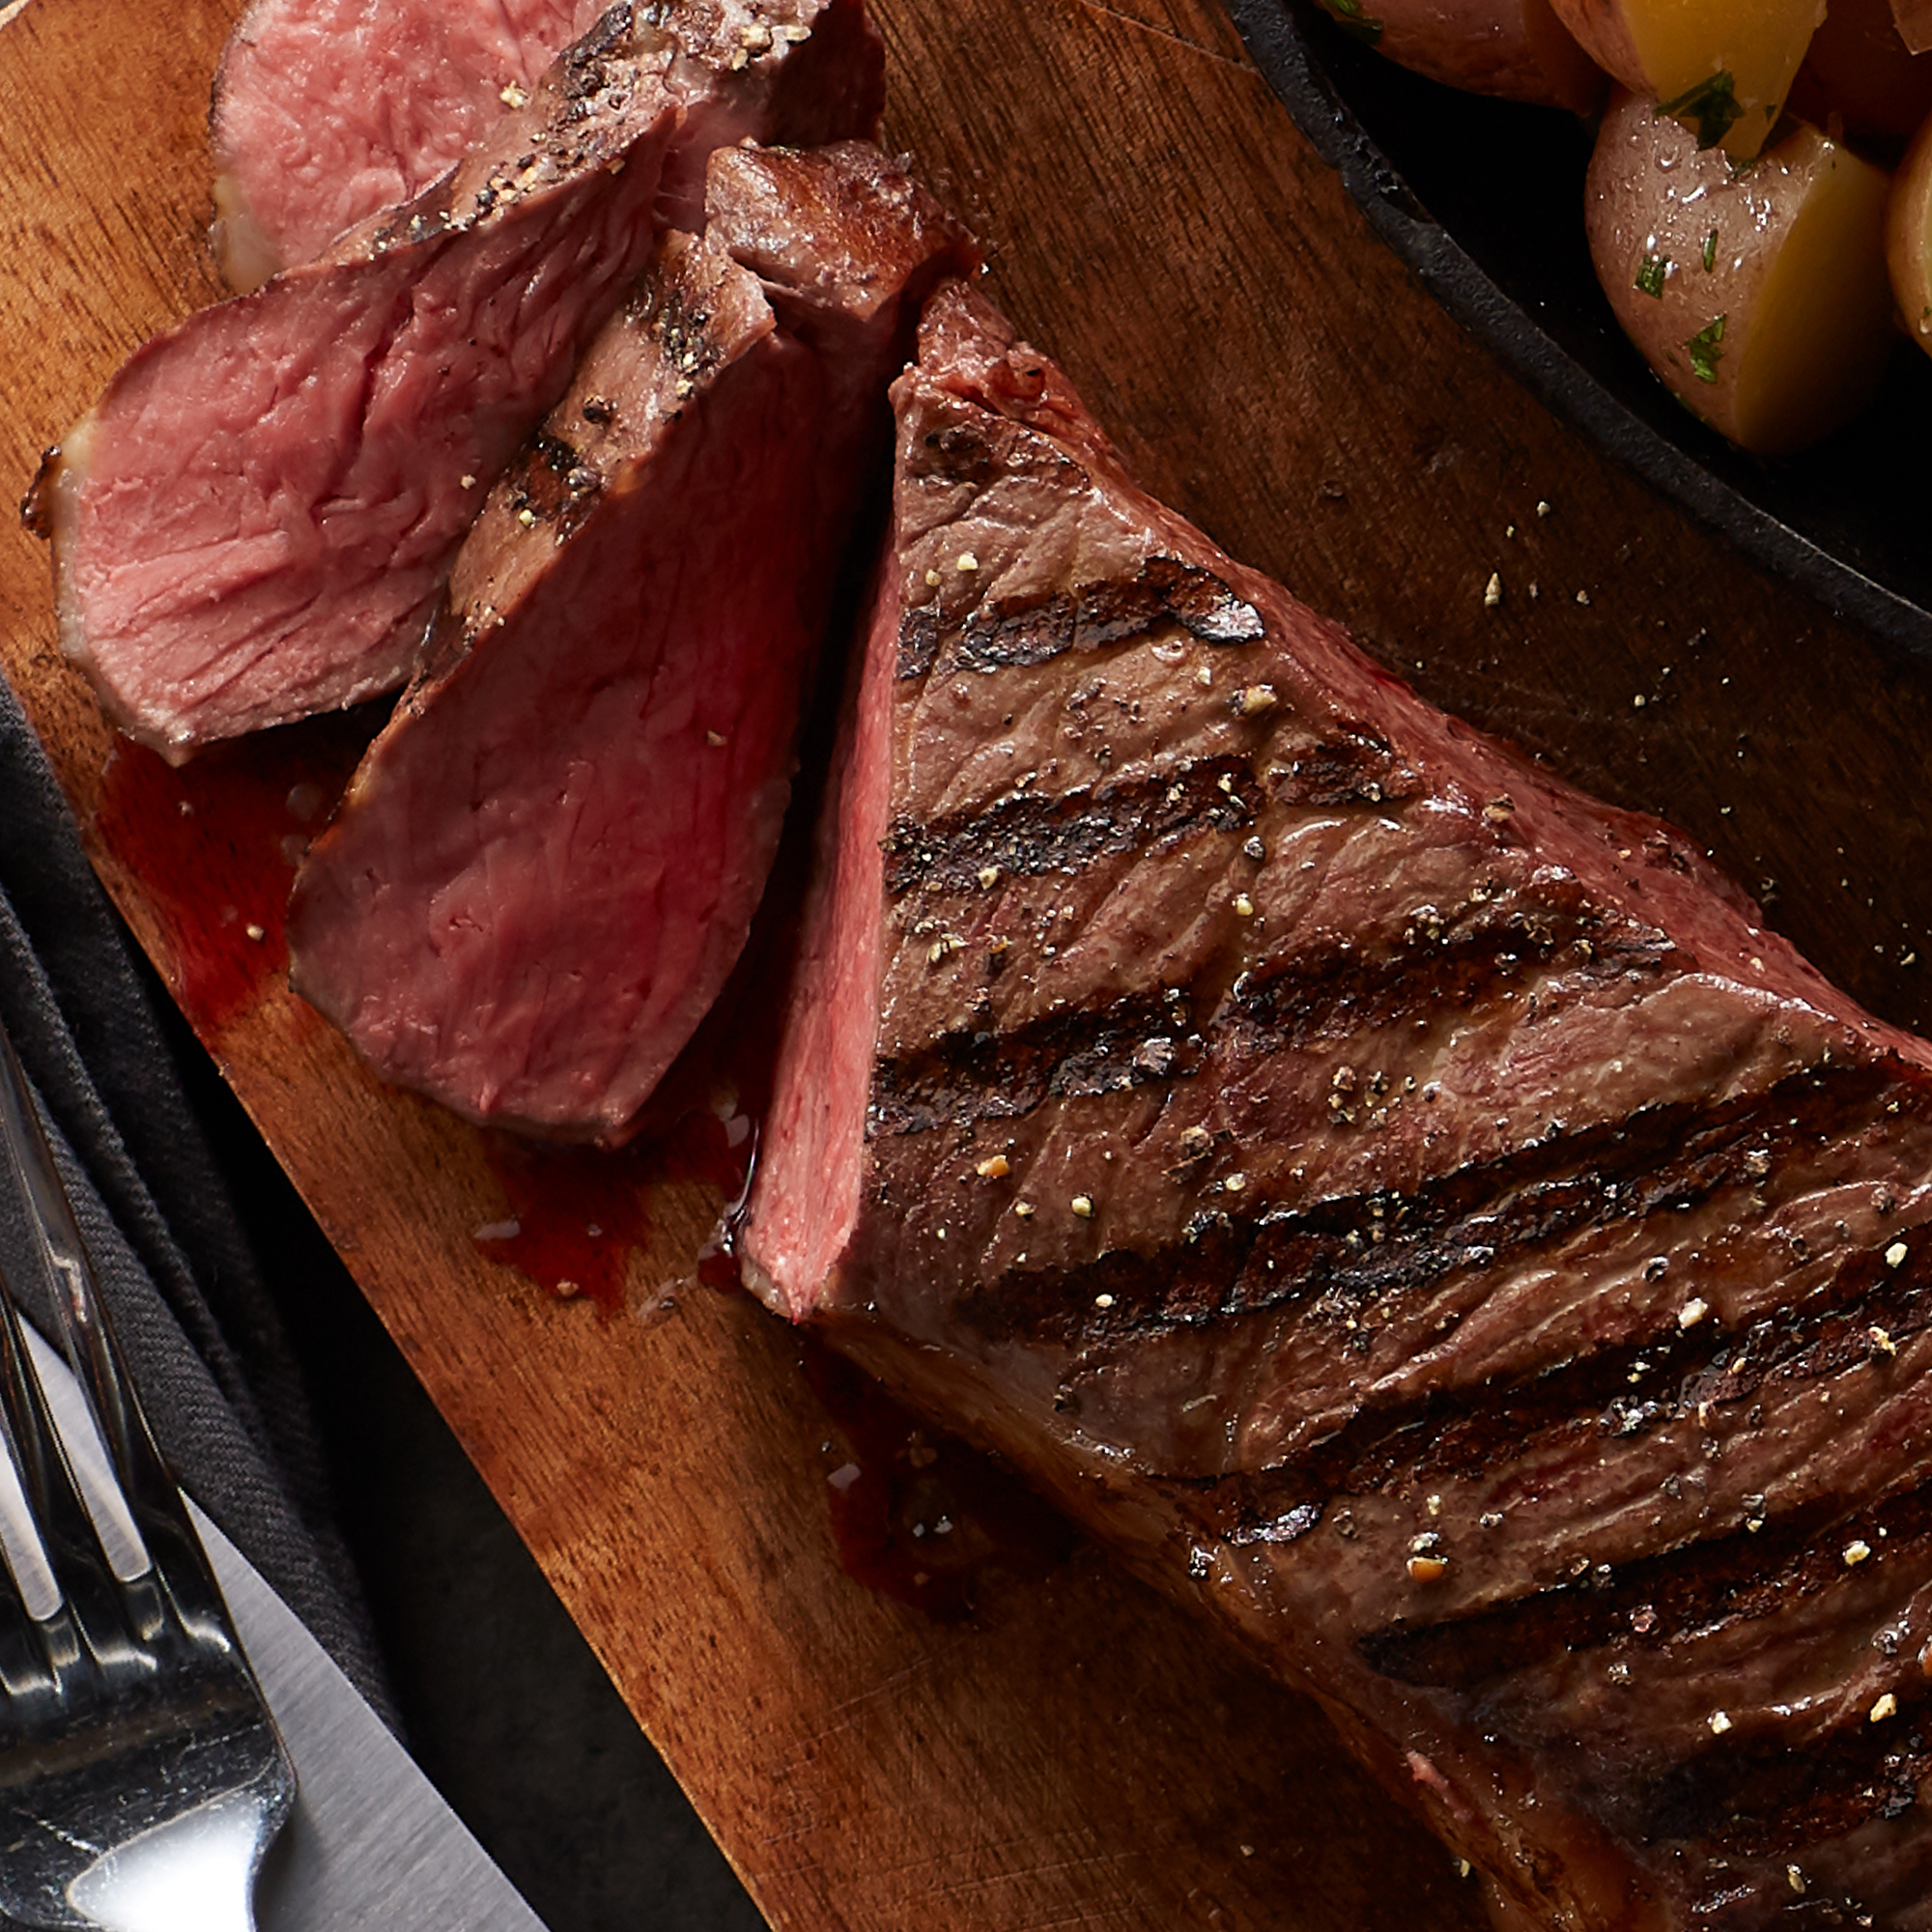 Whether grilled, broiled, sautéed or pan-fried, our New York Strip is thick, juicy and bursting with flavor.